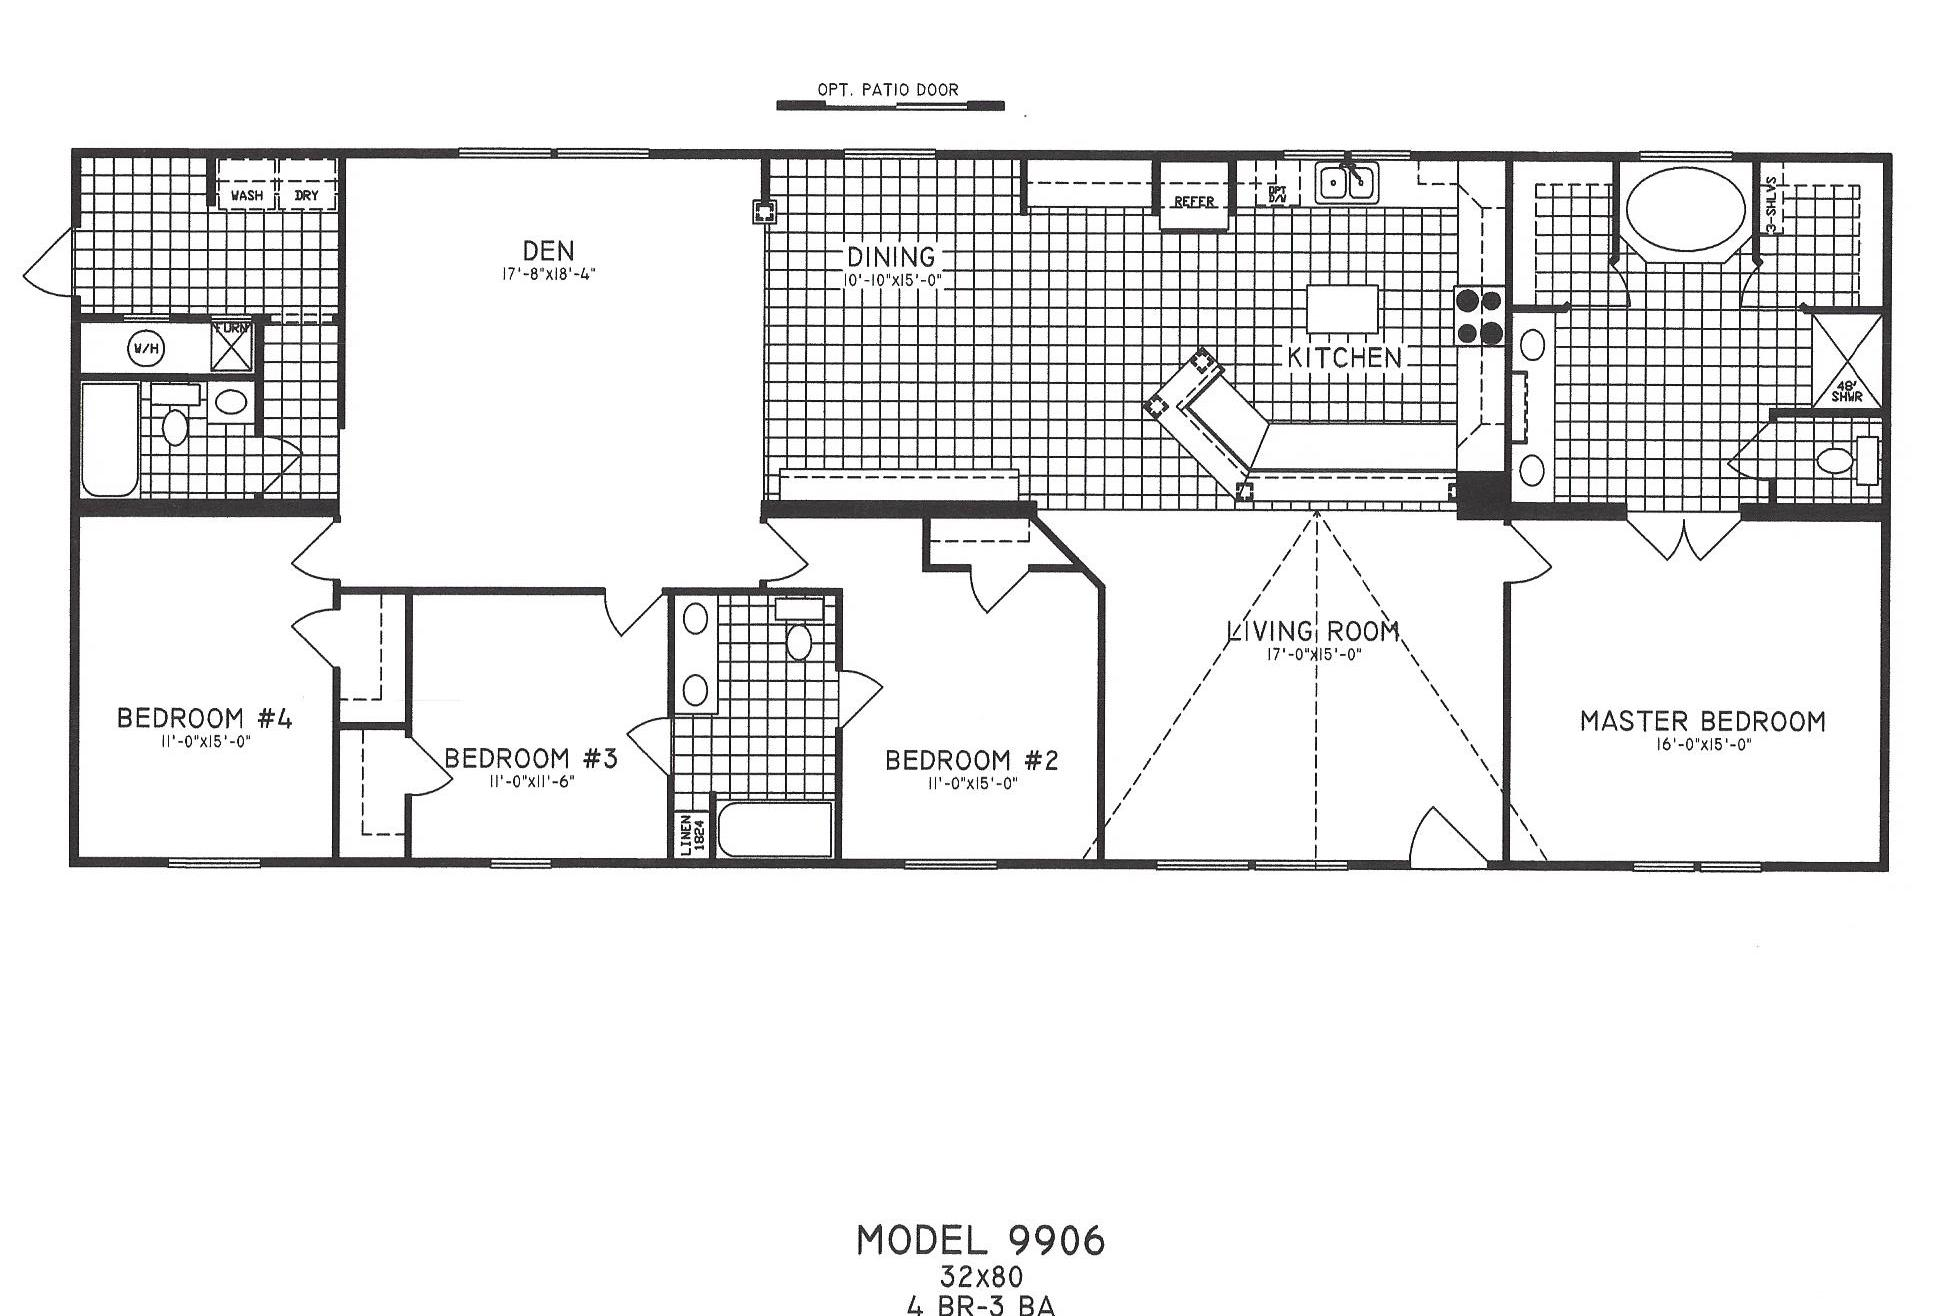 Bathroom drawing plan - New Plan With Jack And Jill 3rd Bath Large Living Room And Den Great Setup And